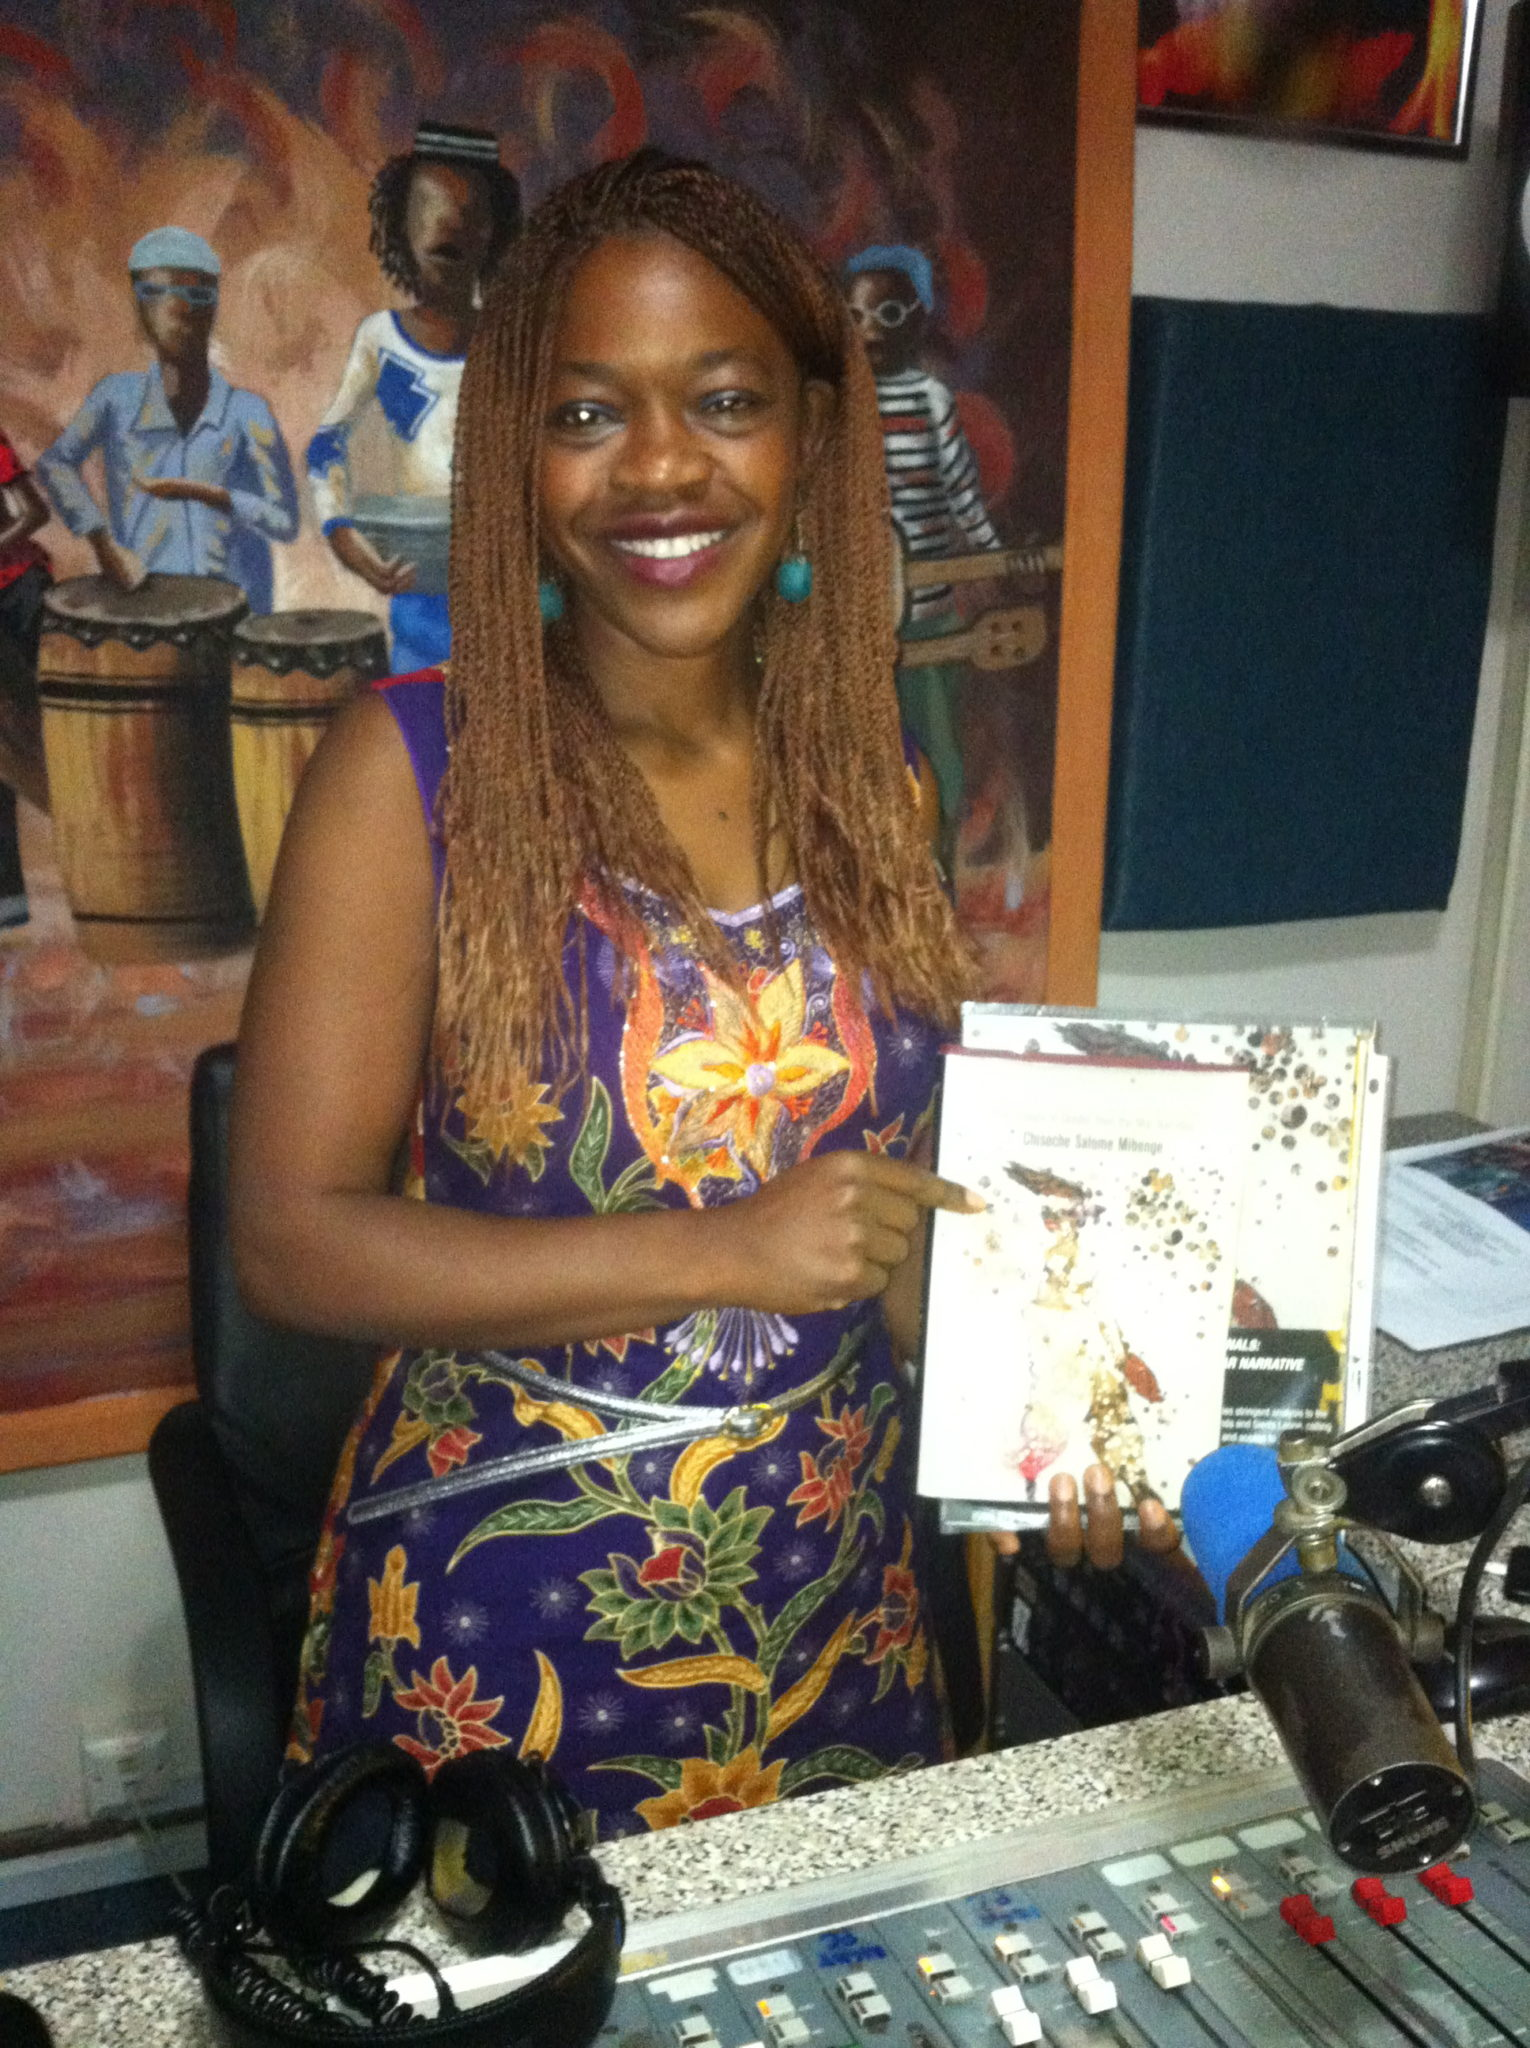 With my book Sex and International Tribunals: The Erasure of Gender from the War Narrative at Radio Phoenix with journalist Luciano Haambote